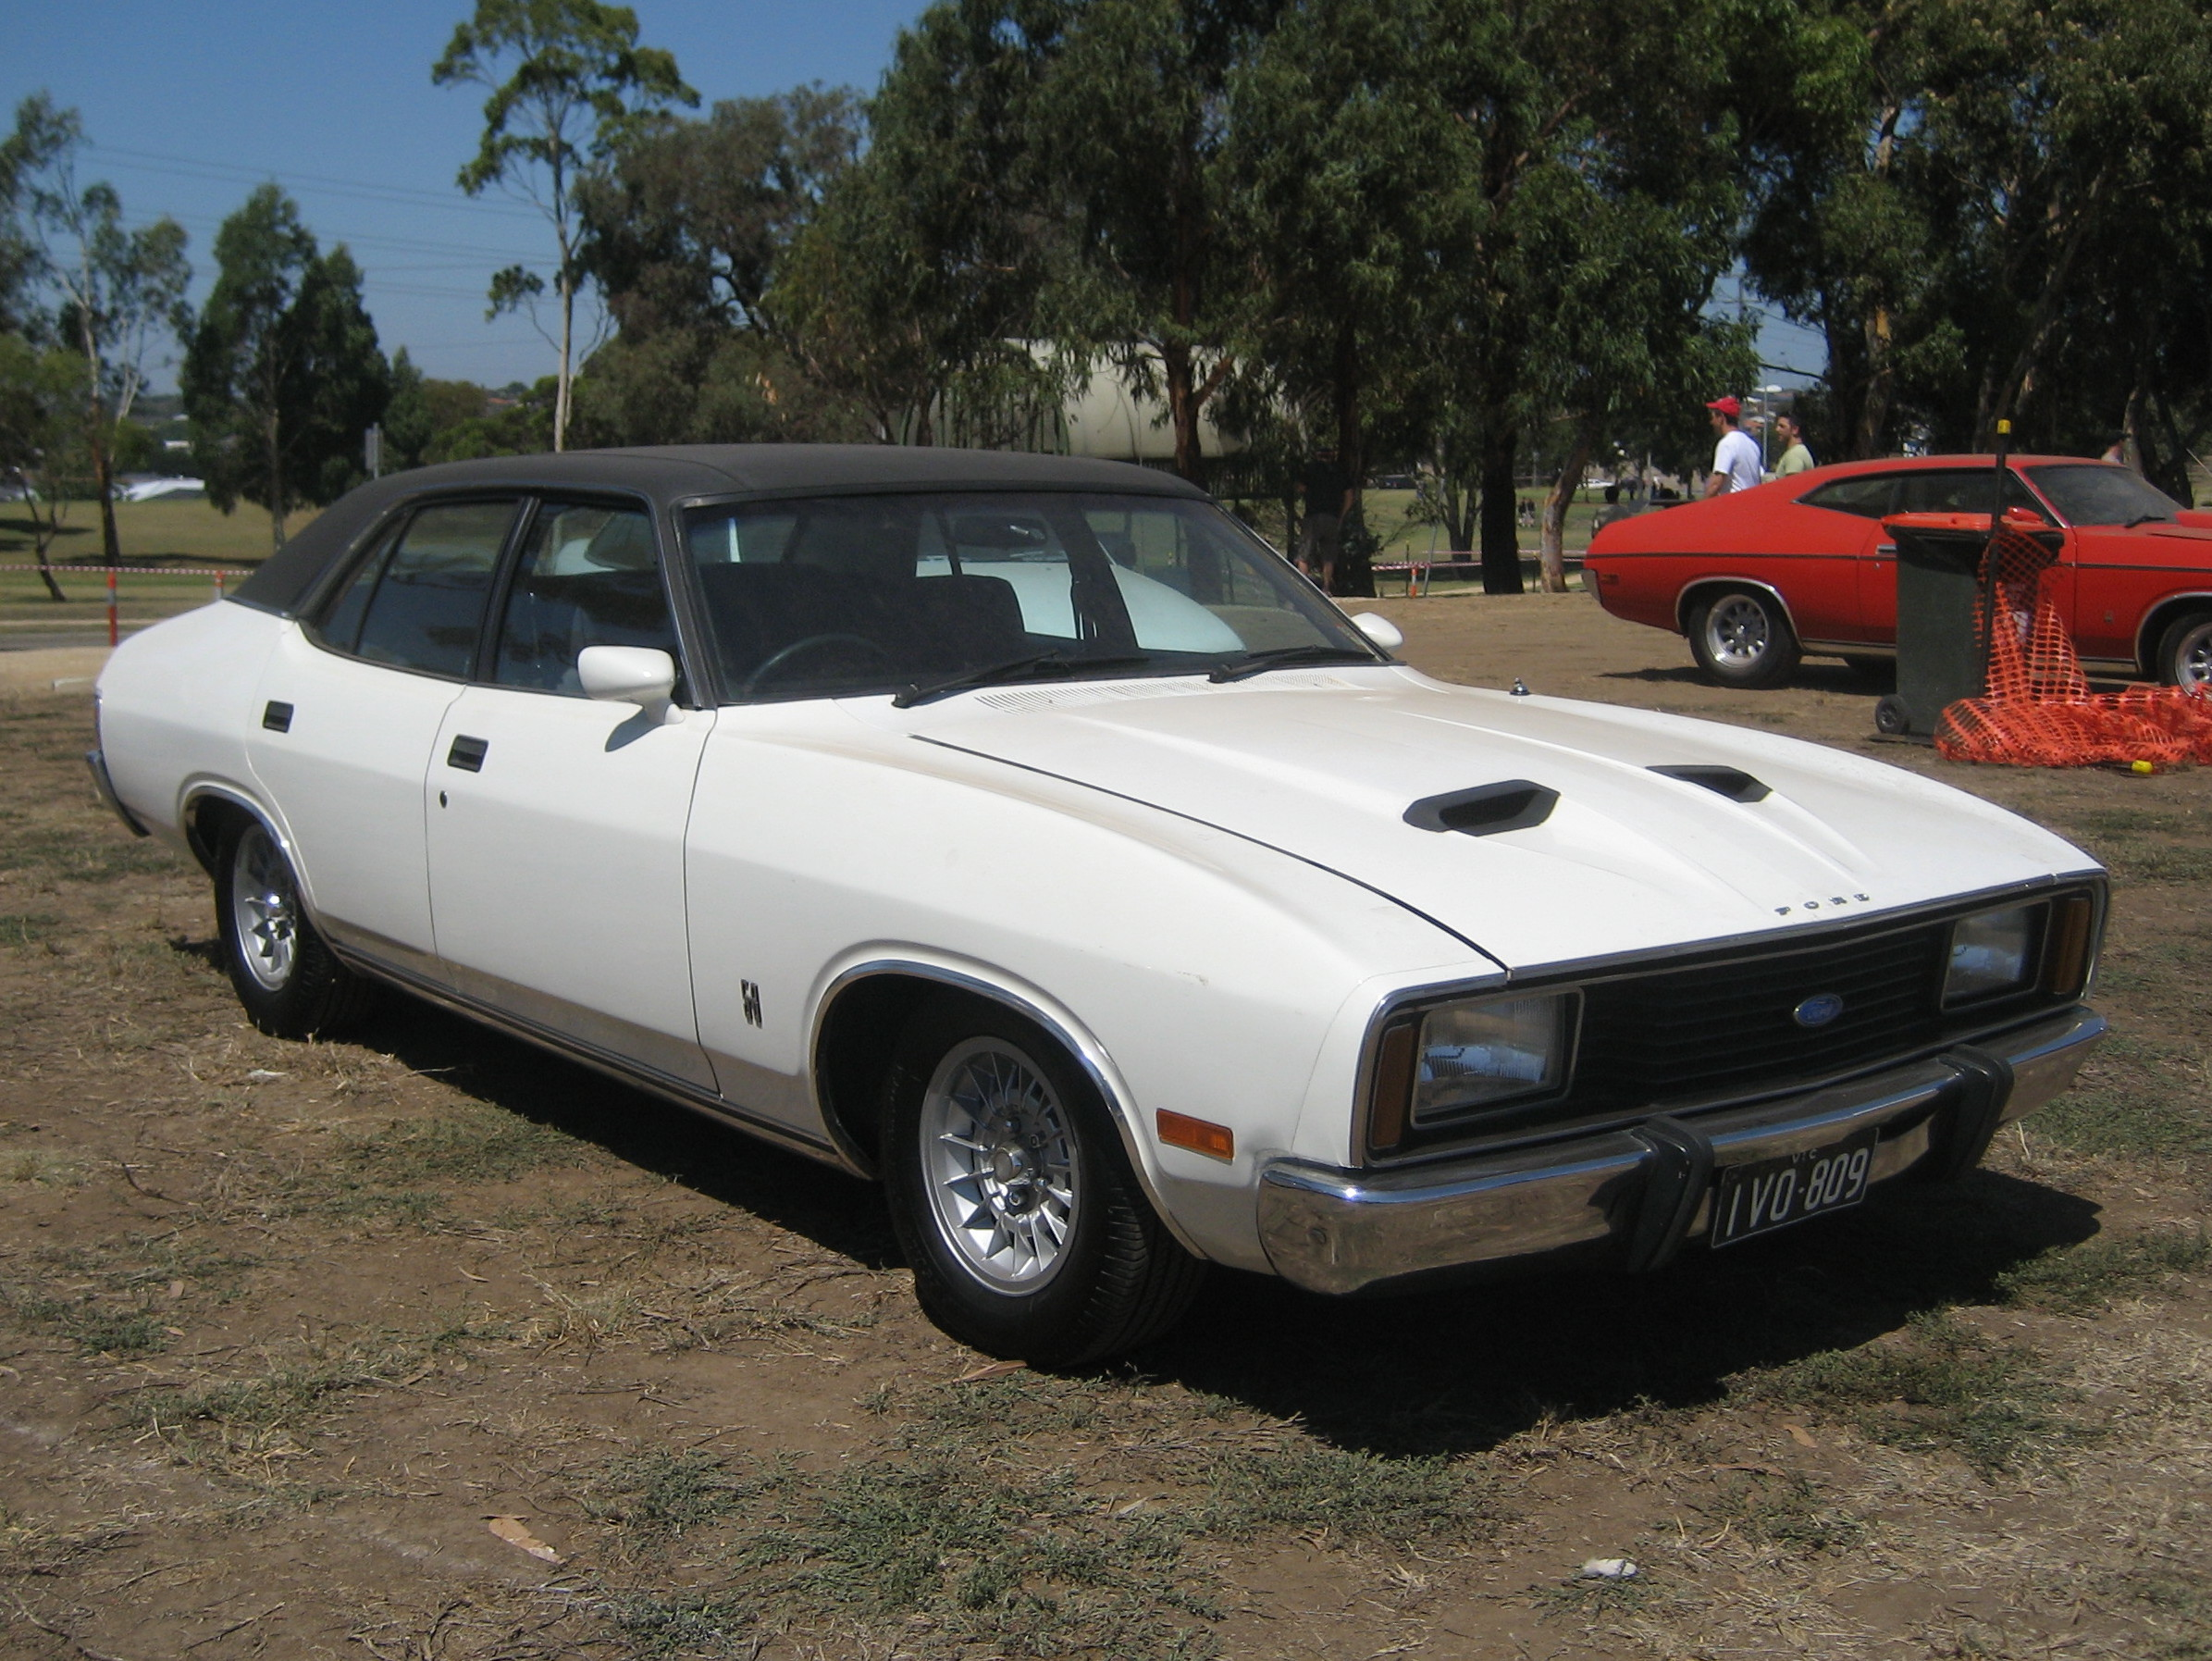 File:Ford Fairmont XC GXL Sedan.jpg